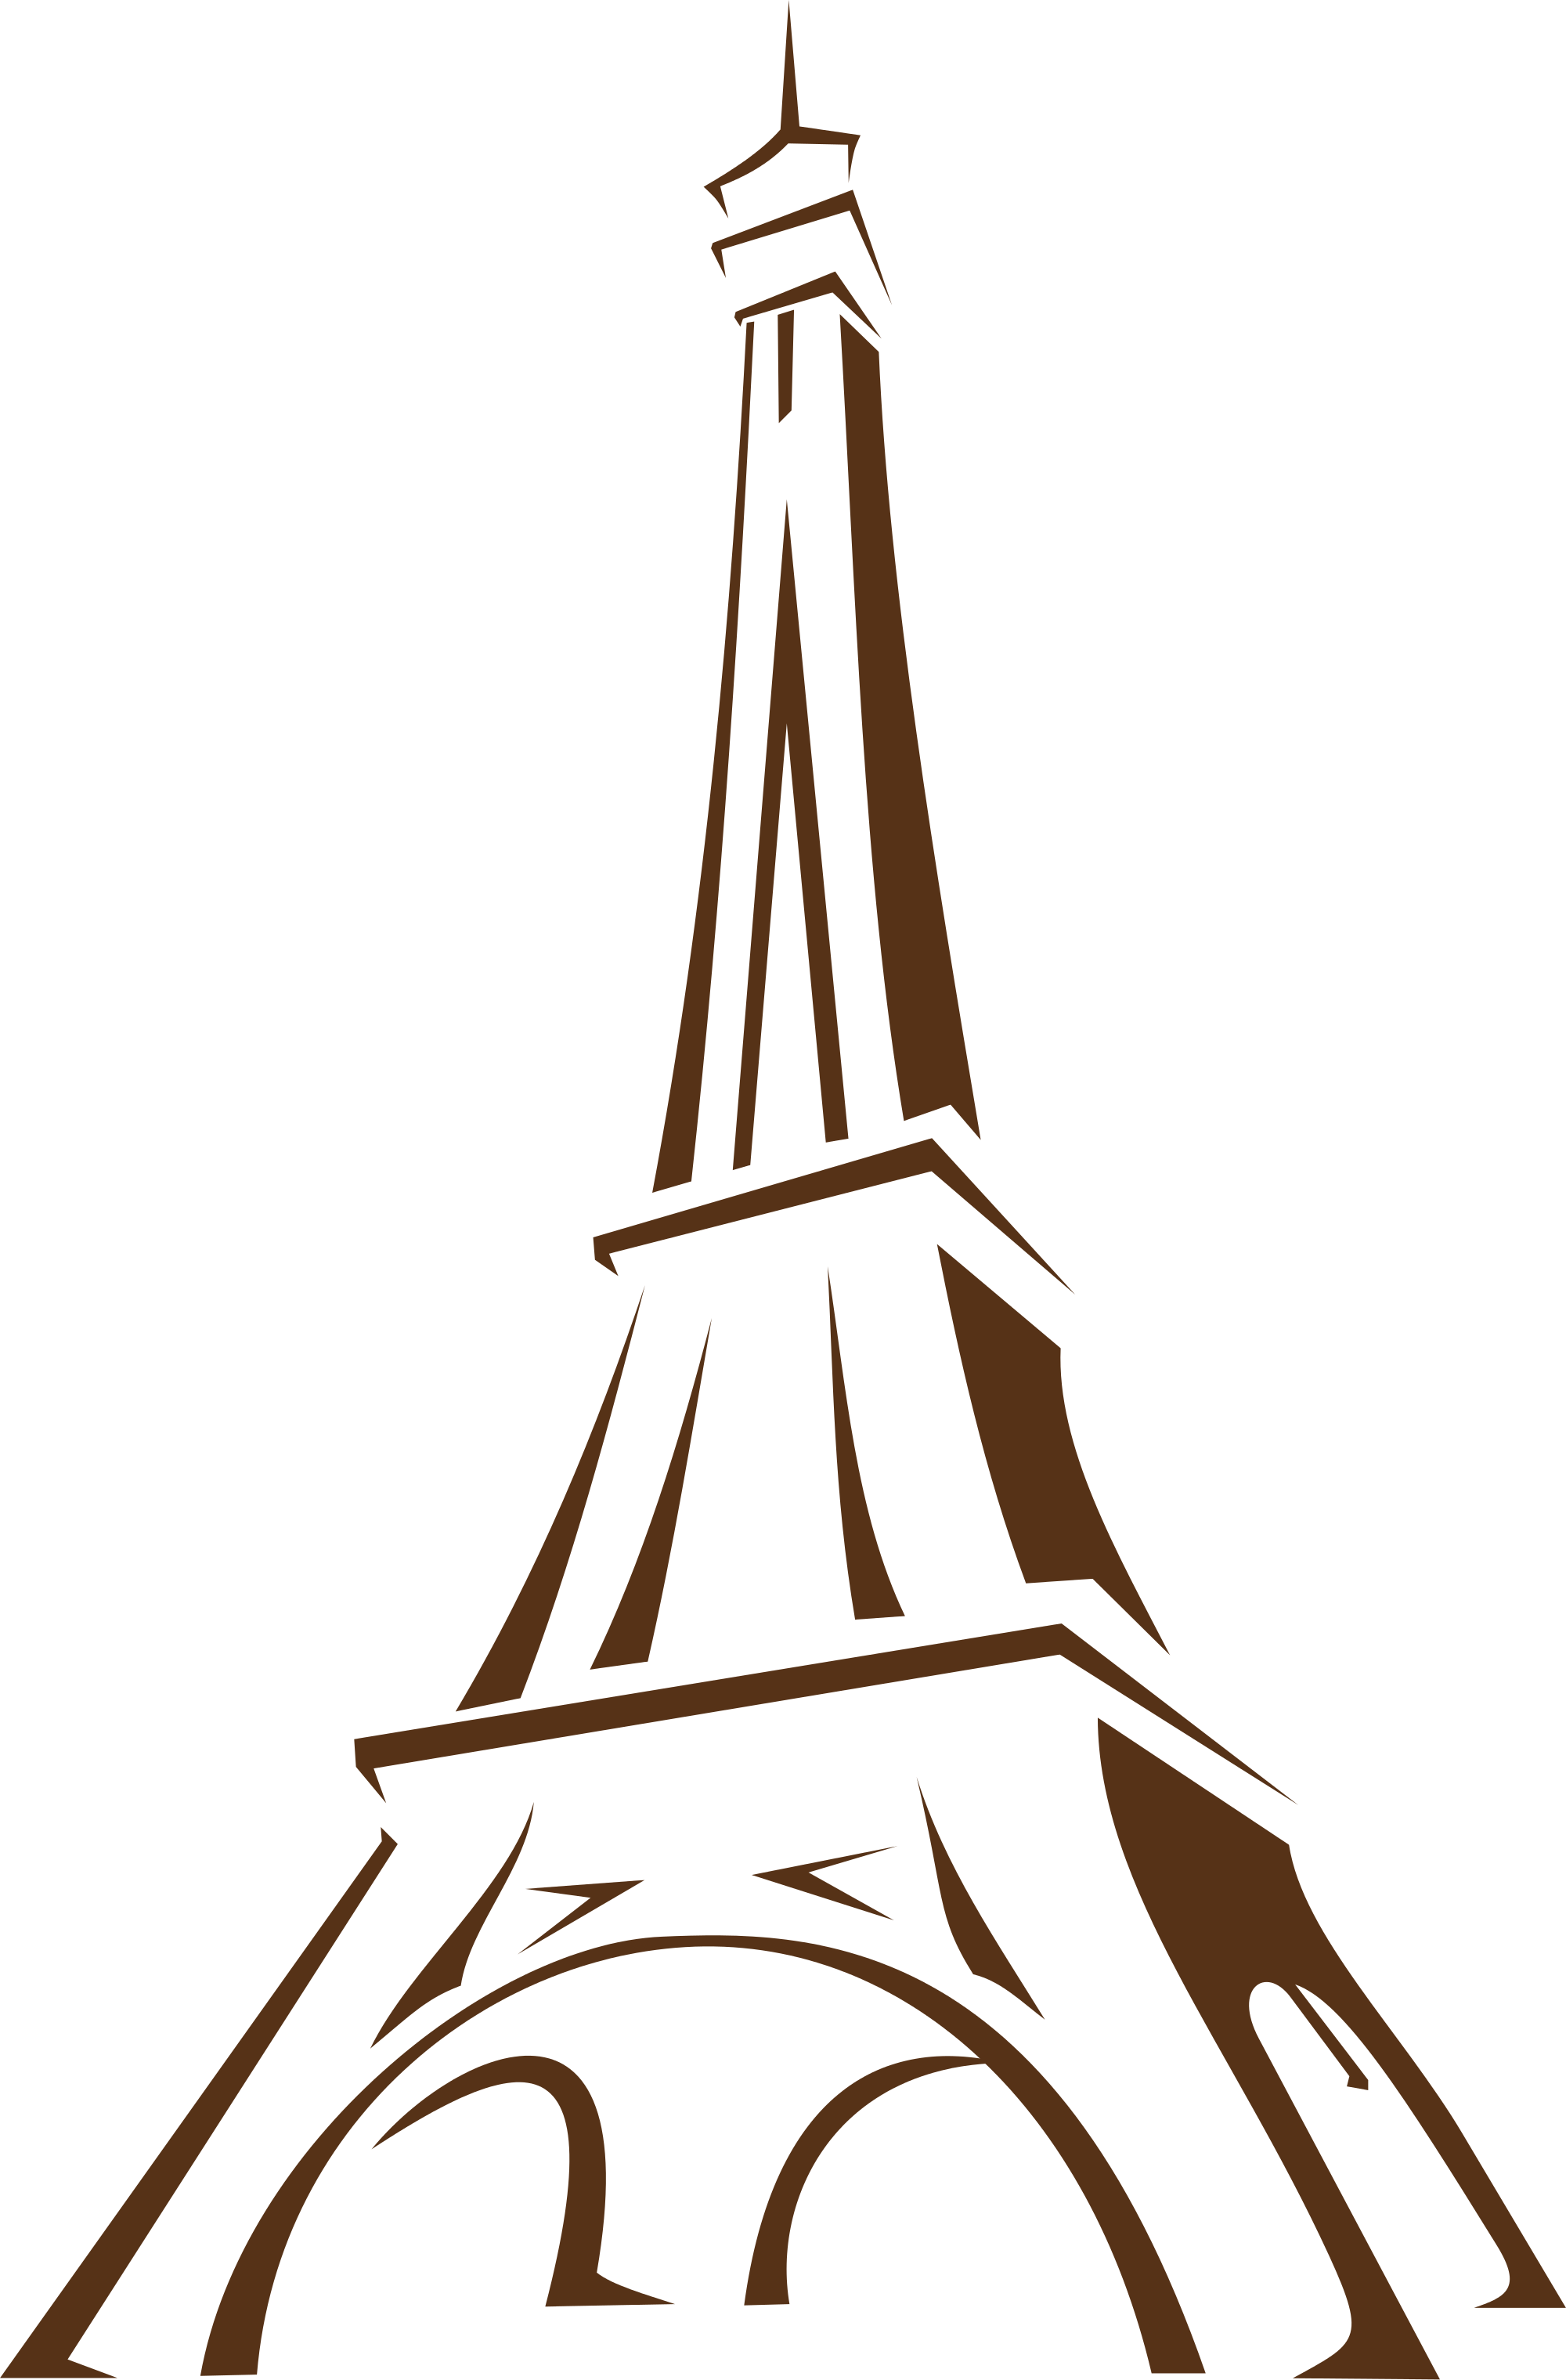 Eiffel Tower PNG Images Transparent Free Download.